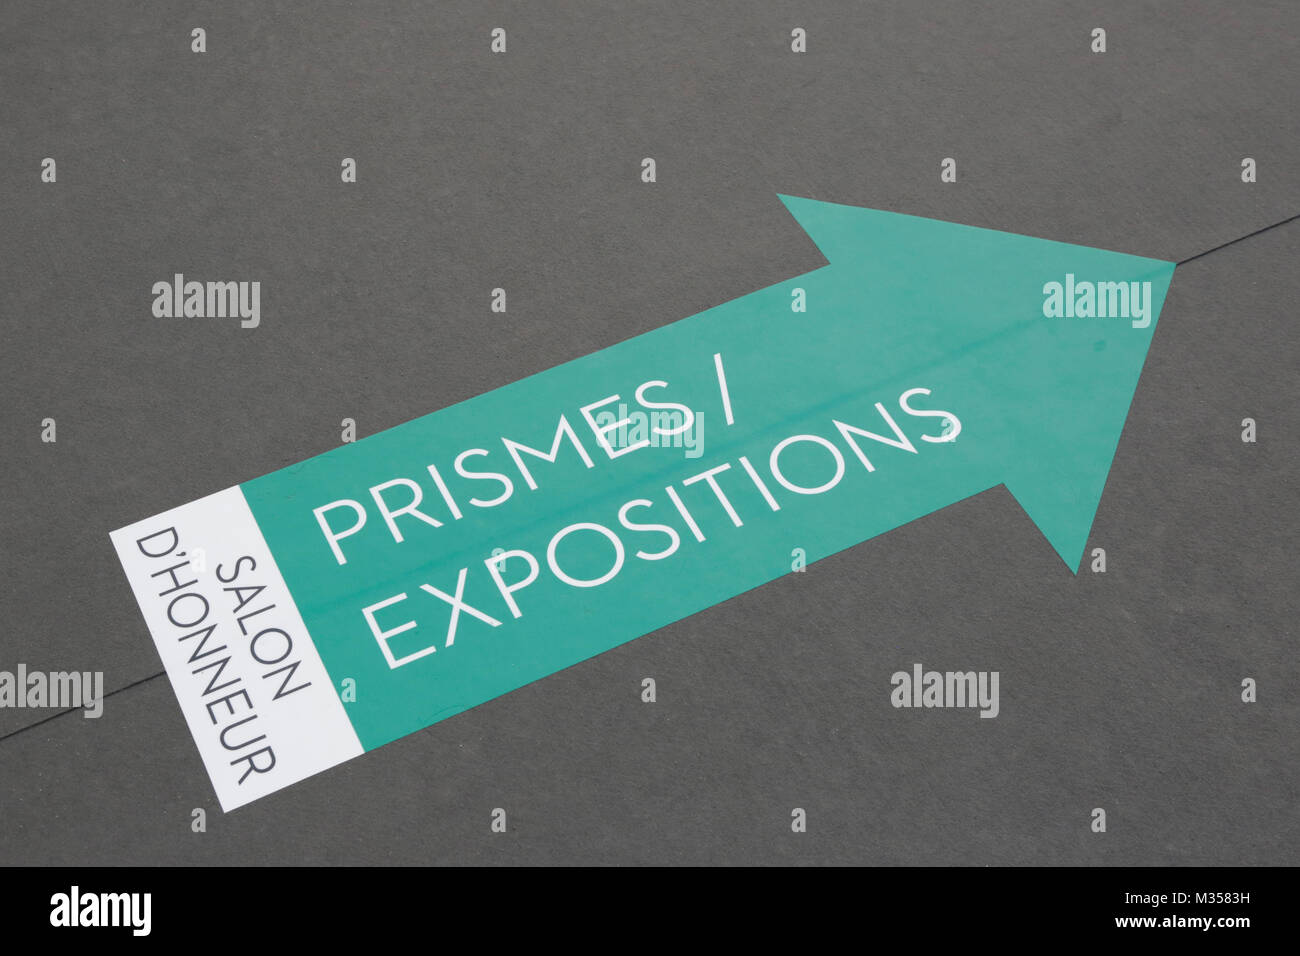 PARIS - NOVEMBER 10: Green arrow sign during Paris Photo art fair at Grand Palais on November 10, 2017 in Paris, - Stock Image